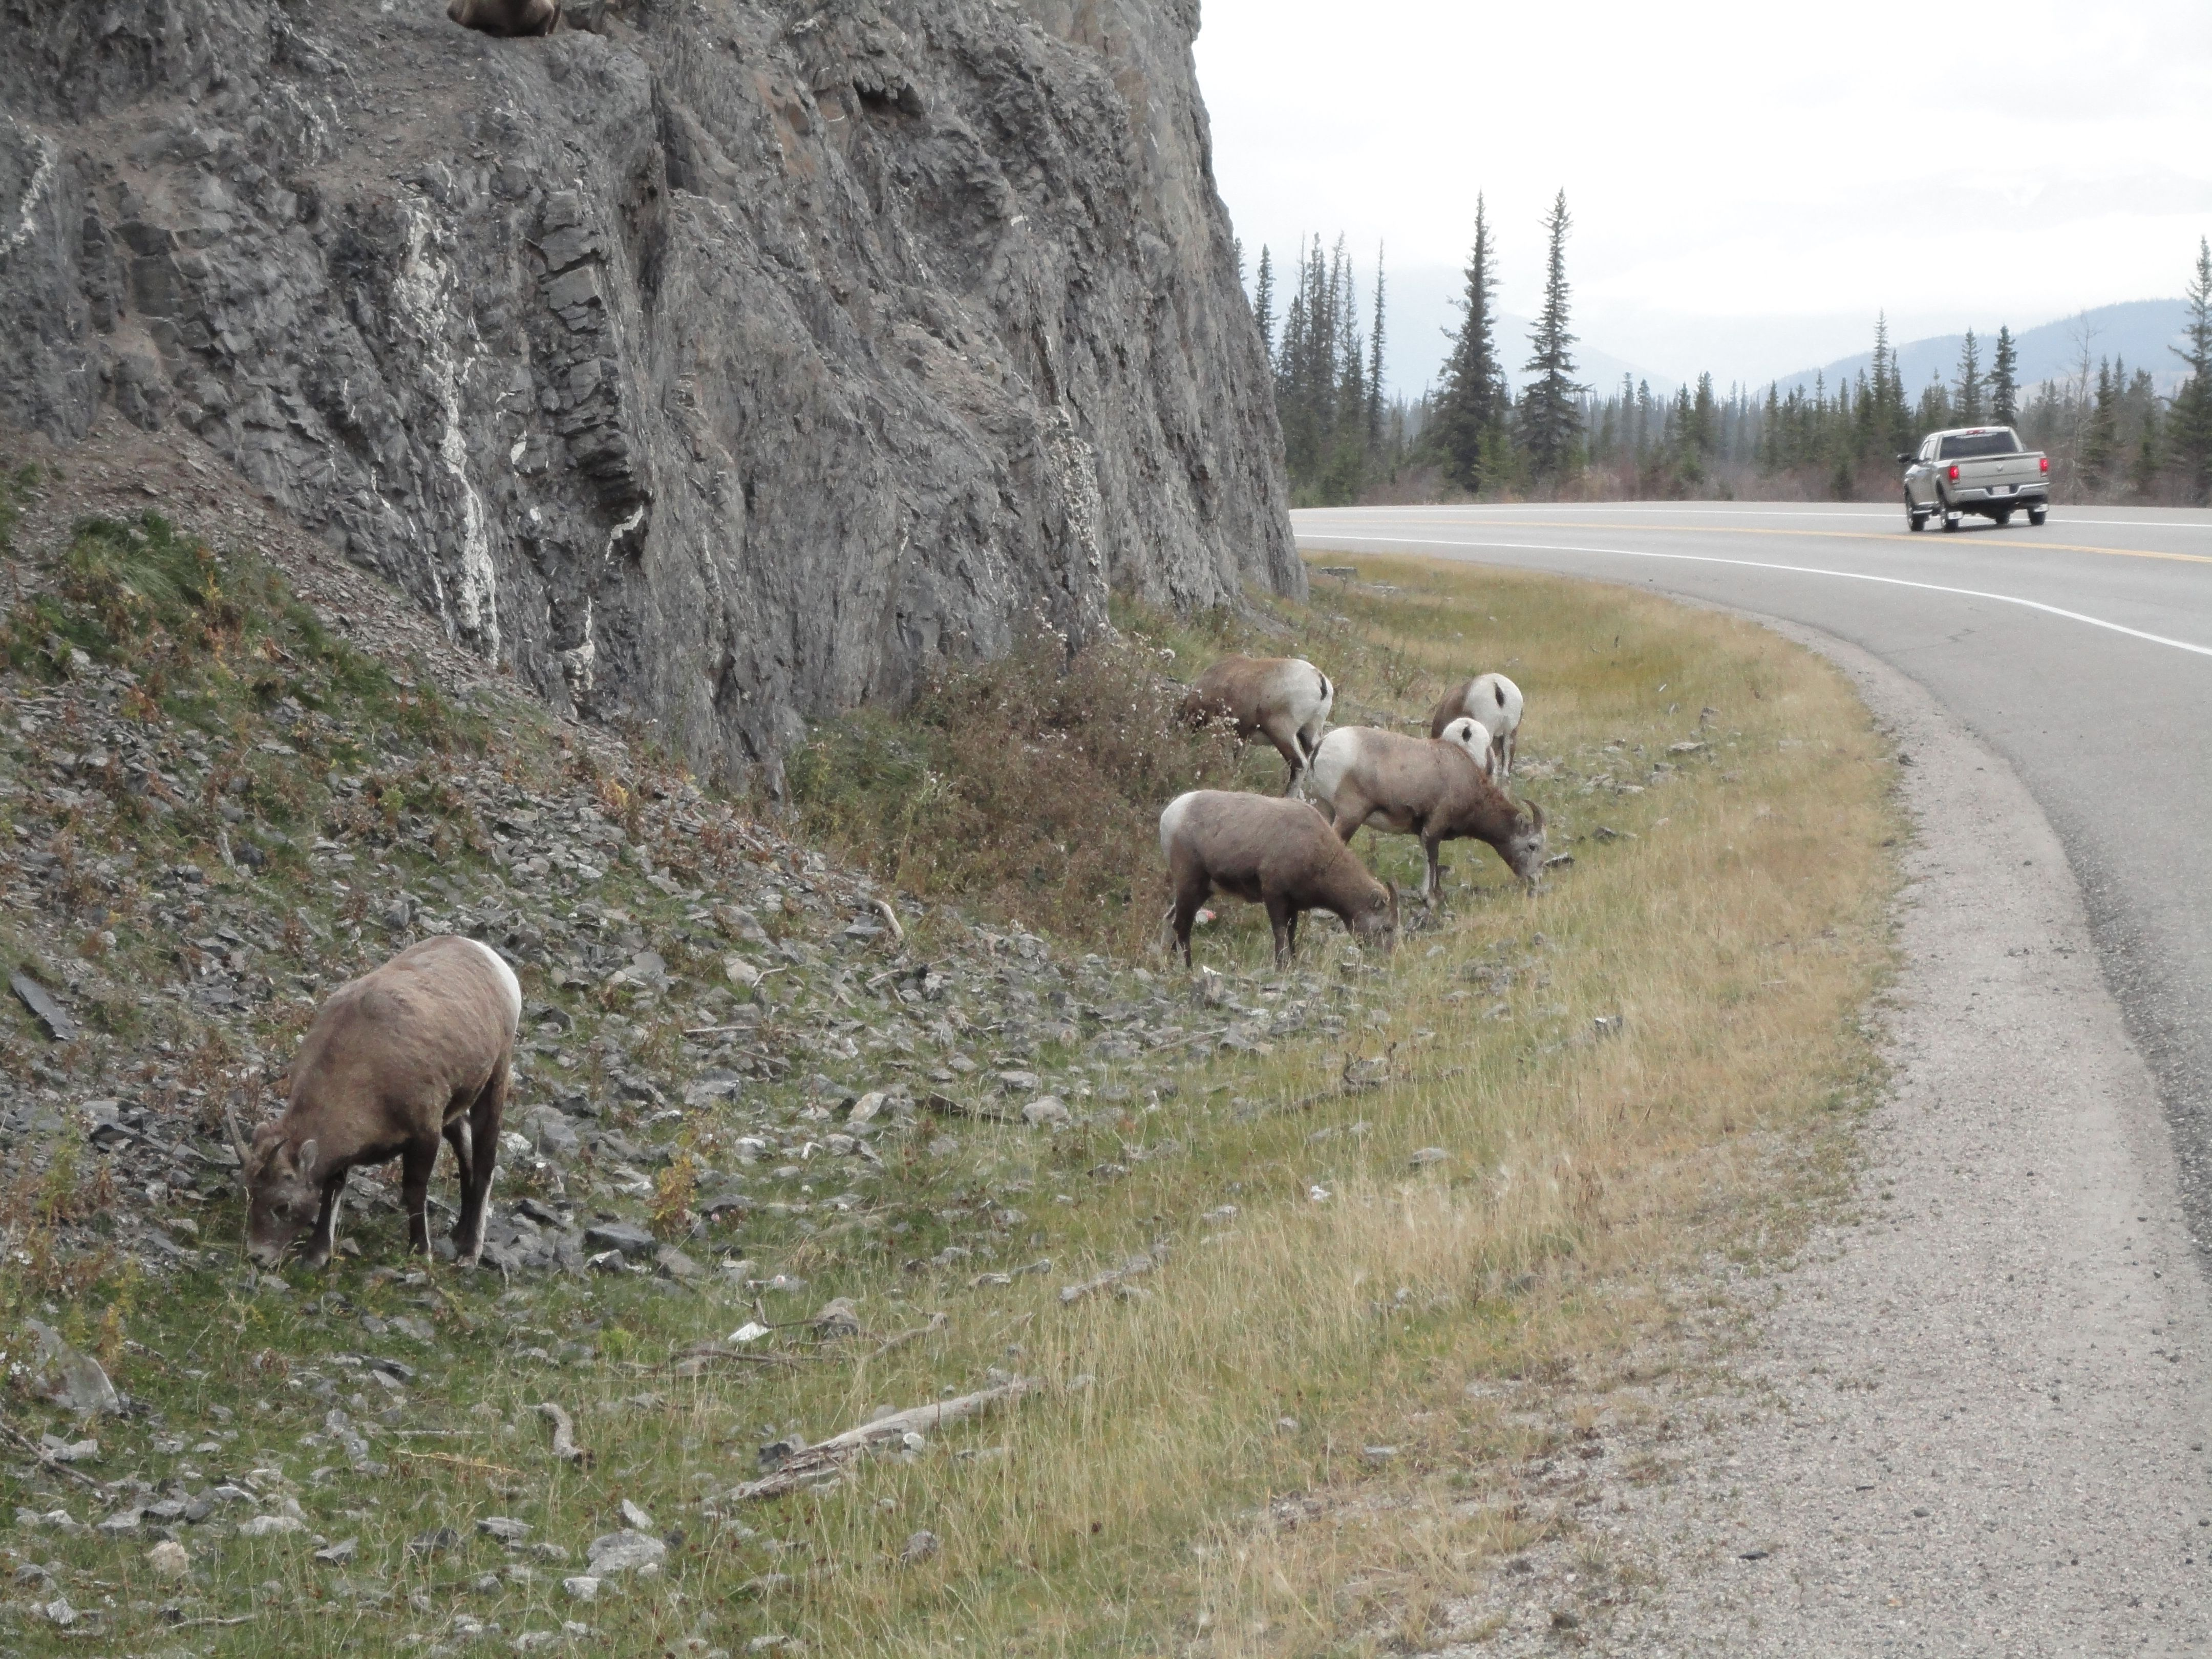 Wildlife Experience in Roger's Pass #WHITESWAN